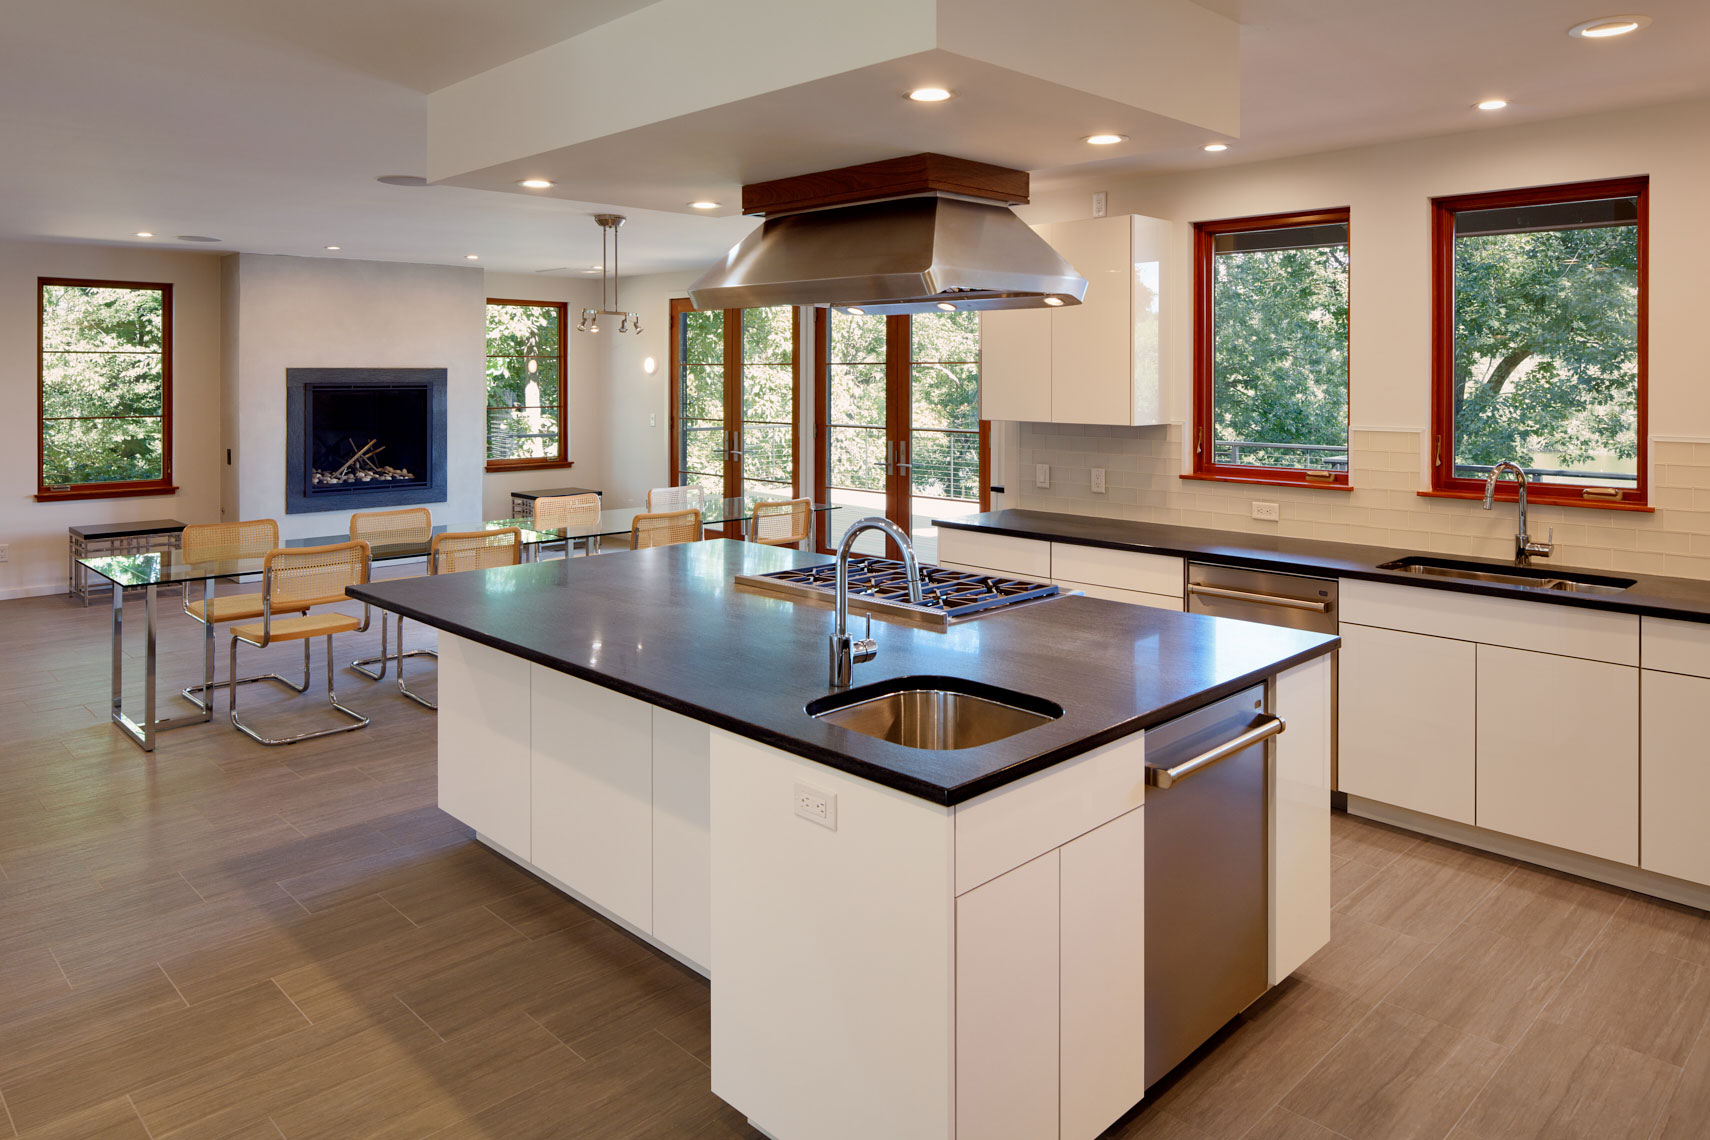 Lake House - Princeton, NJ - Kitchen with Island - Abby Schwartz Associates